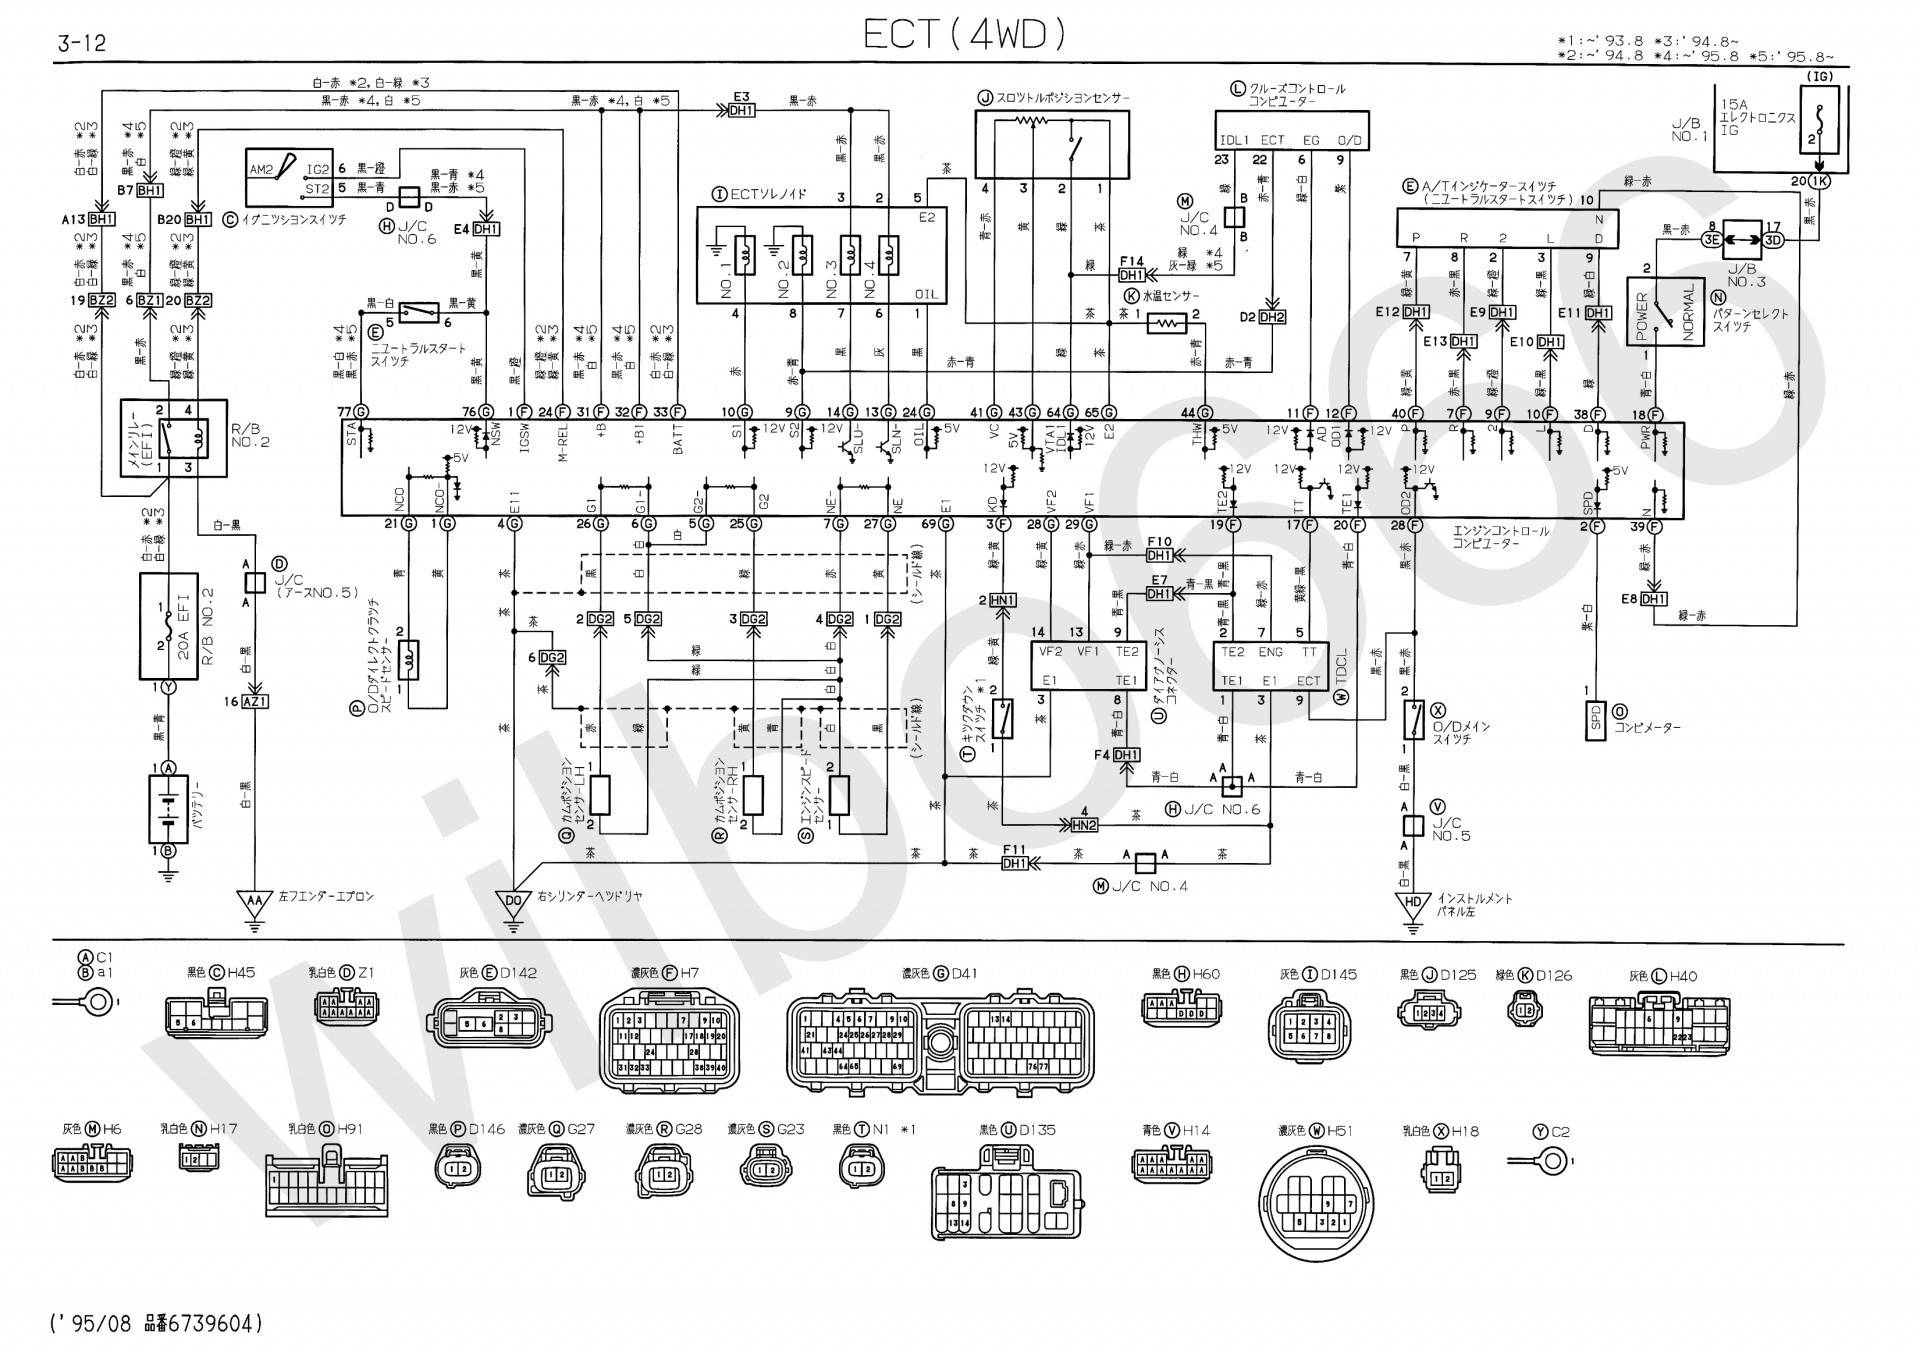 1999 toyota solara Engine Diagram Cool Review About toyota solara 2004 with Captivating Of 1999 toyota solara Engine Diagram